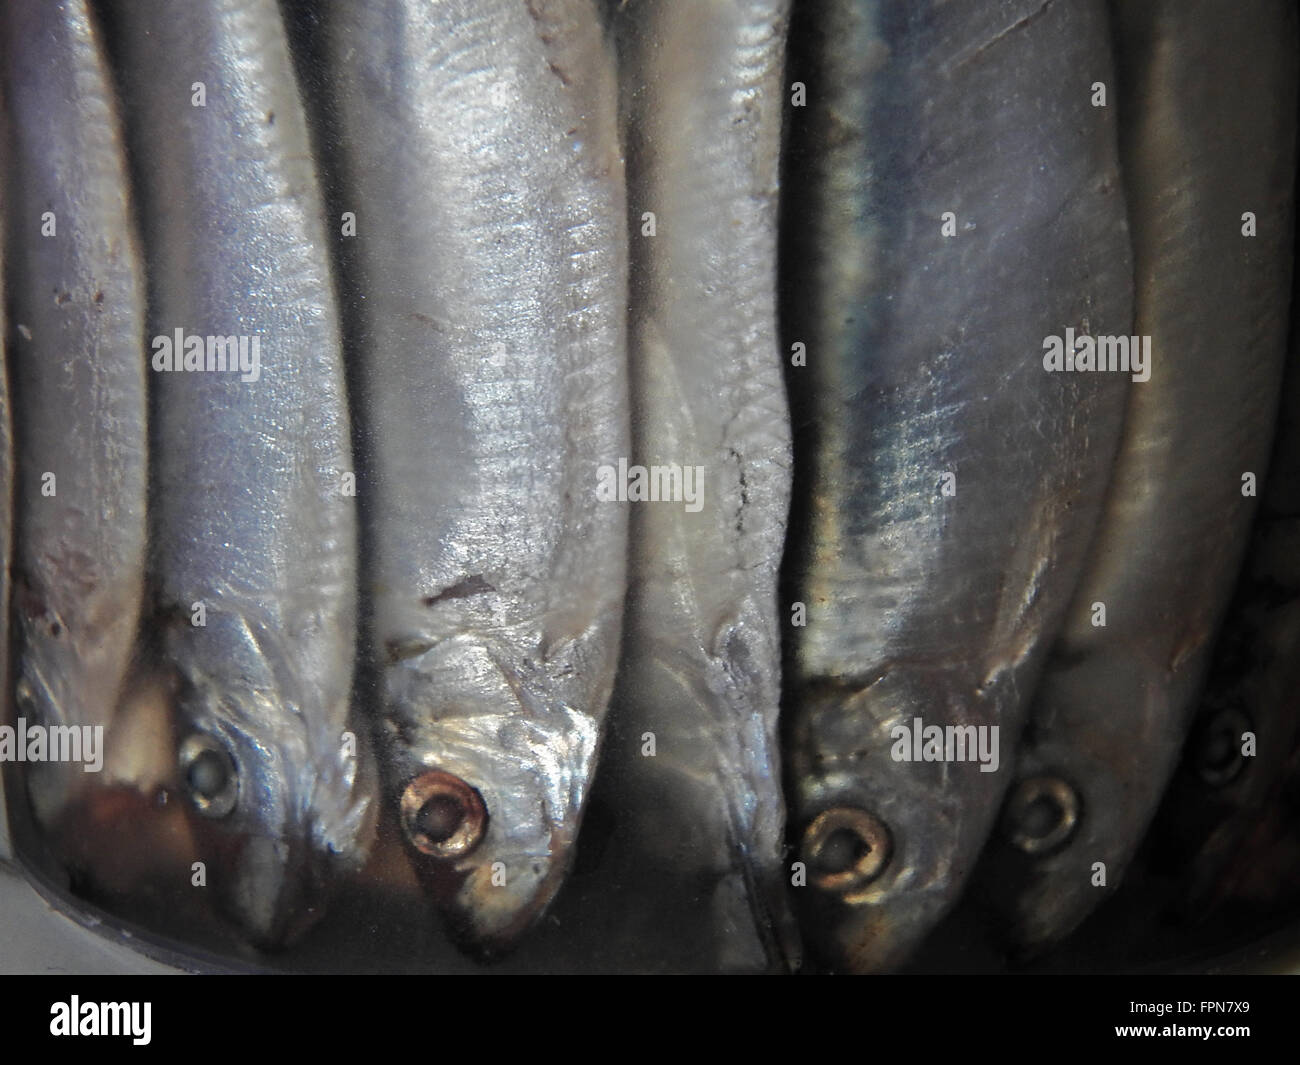 the canned sprat container, Overcrowded with fish. upside down - Stock Image